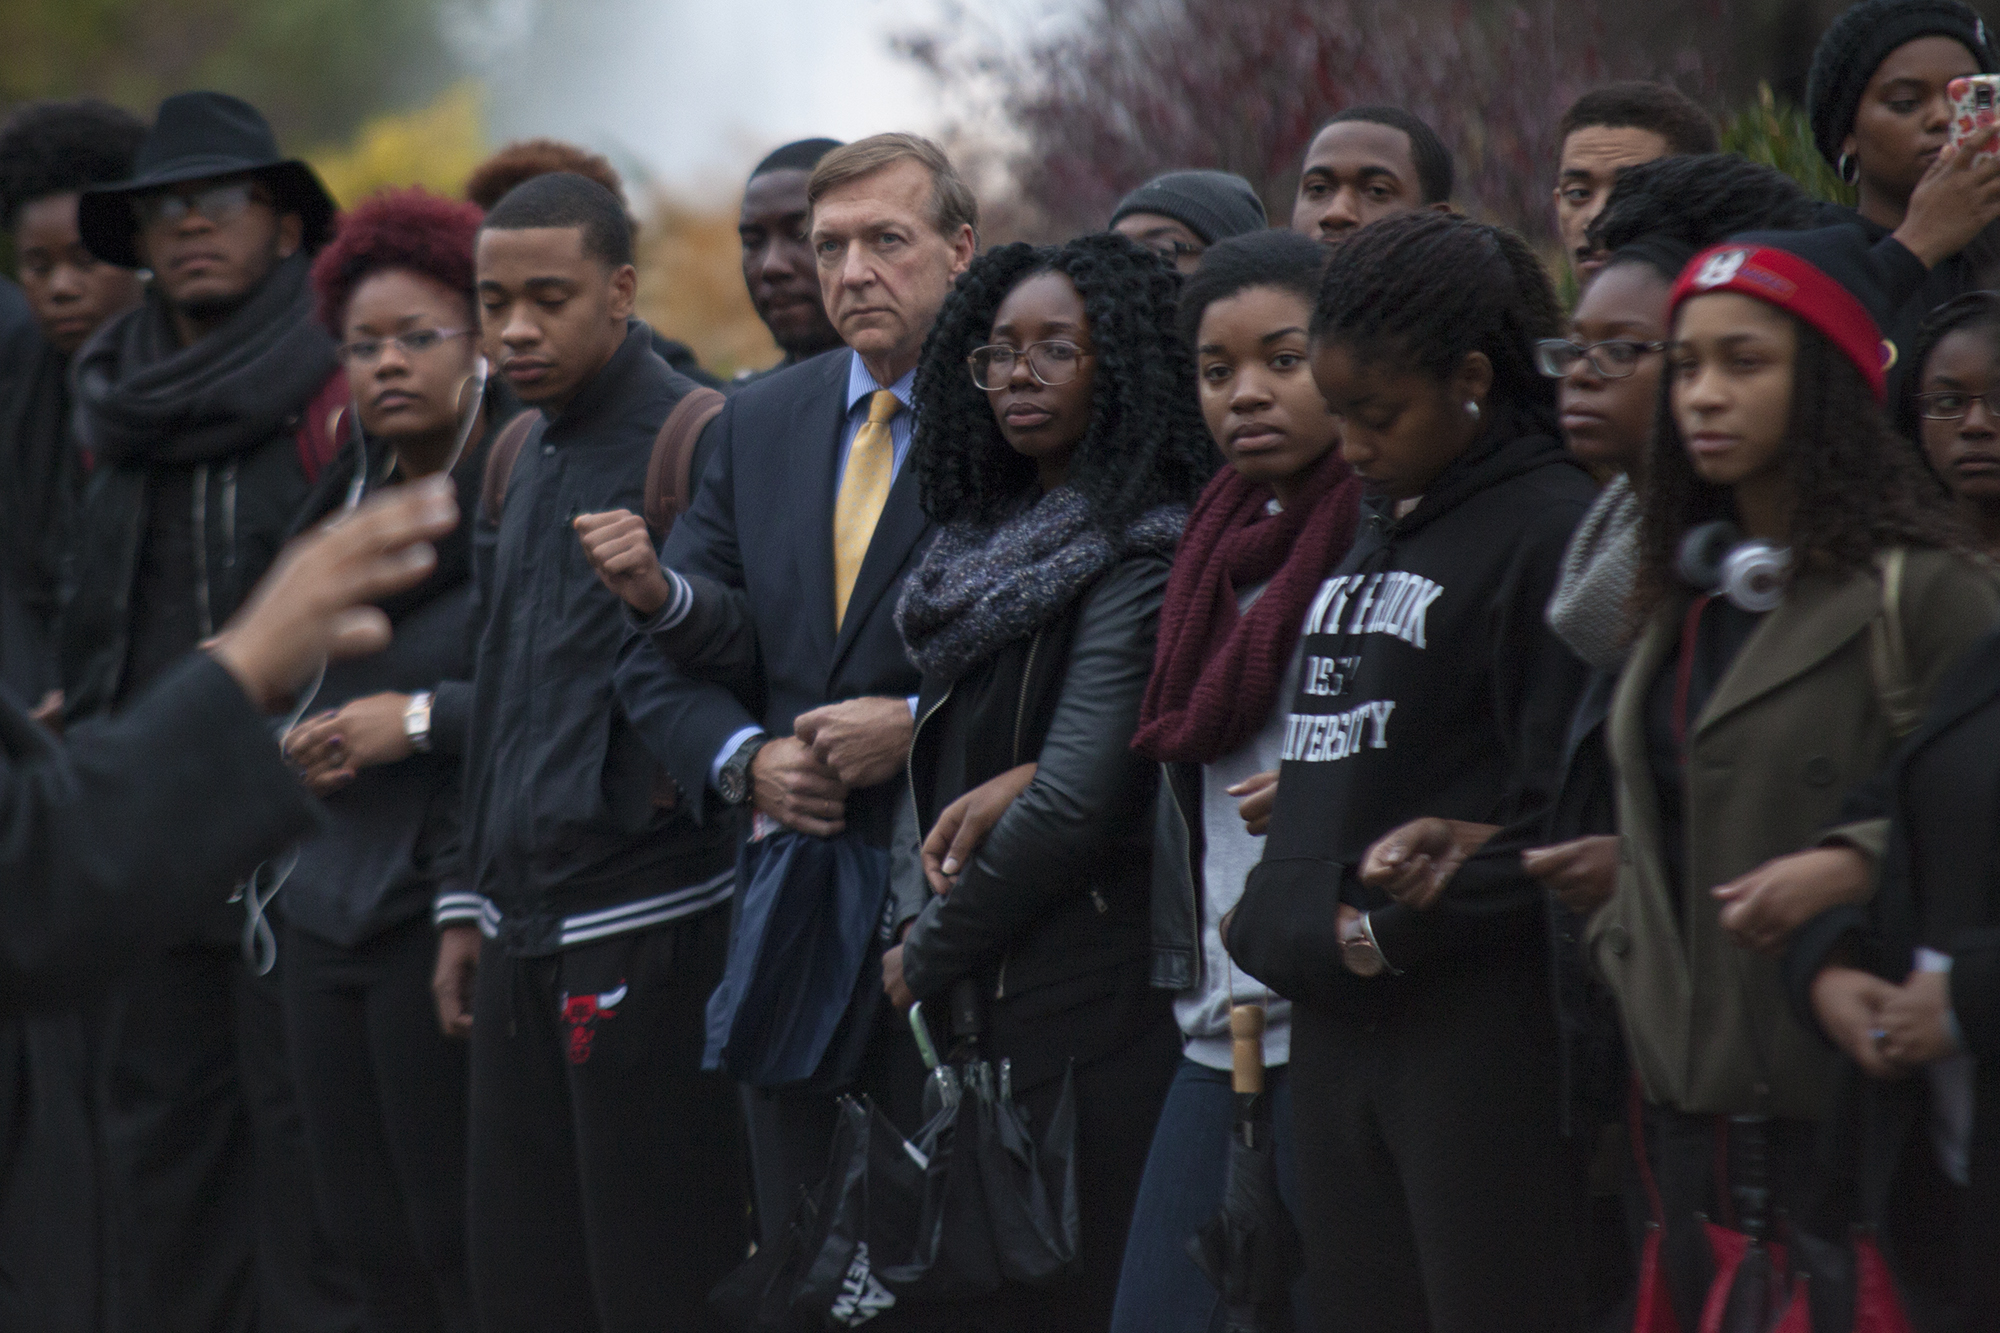 Stony Brook University President Samuel L. Stanley Jr. participates in a demonstration with Stony Brook students on Nov. 12, 2015. CHRISTOPHER CAMERON/THE STATESMAN